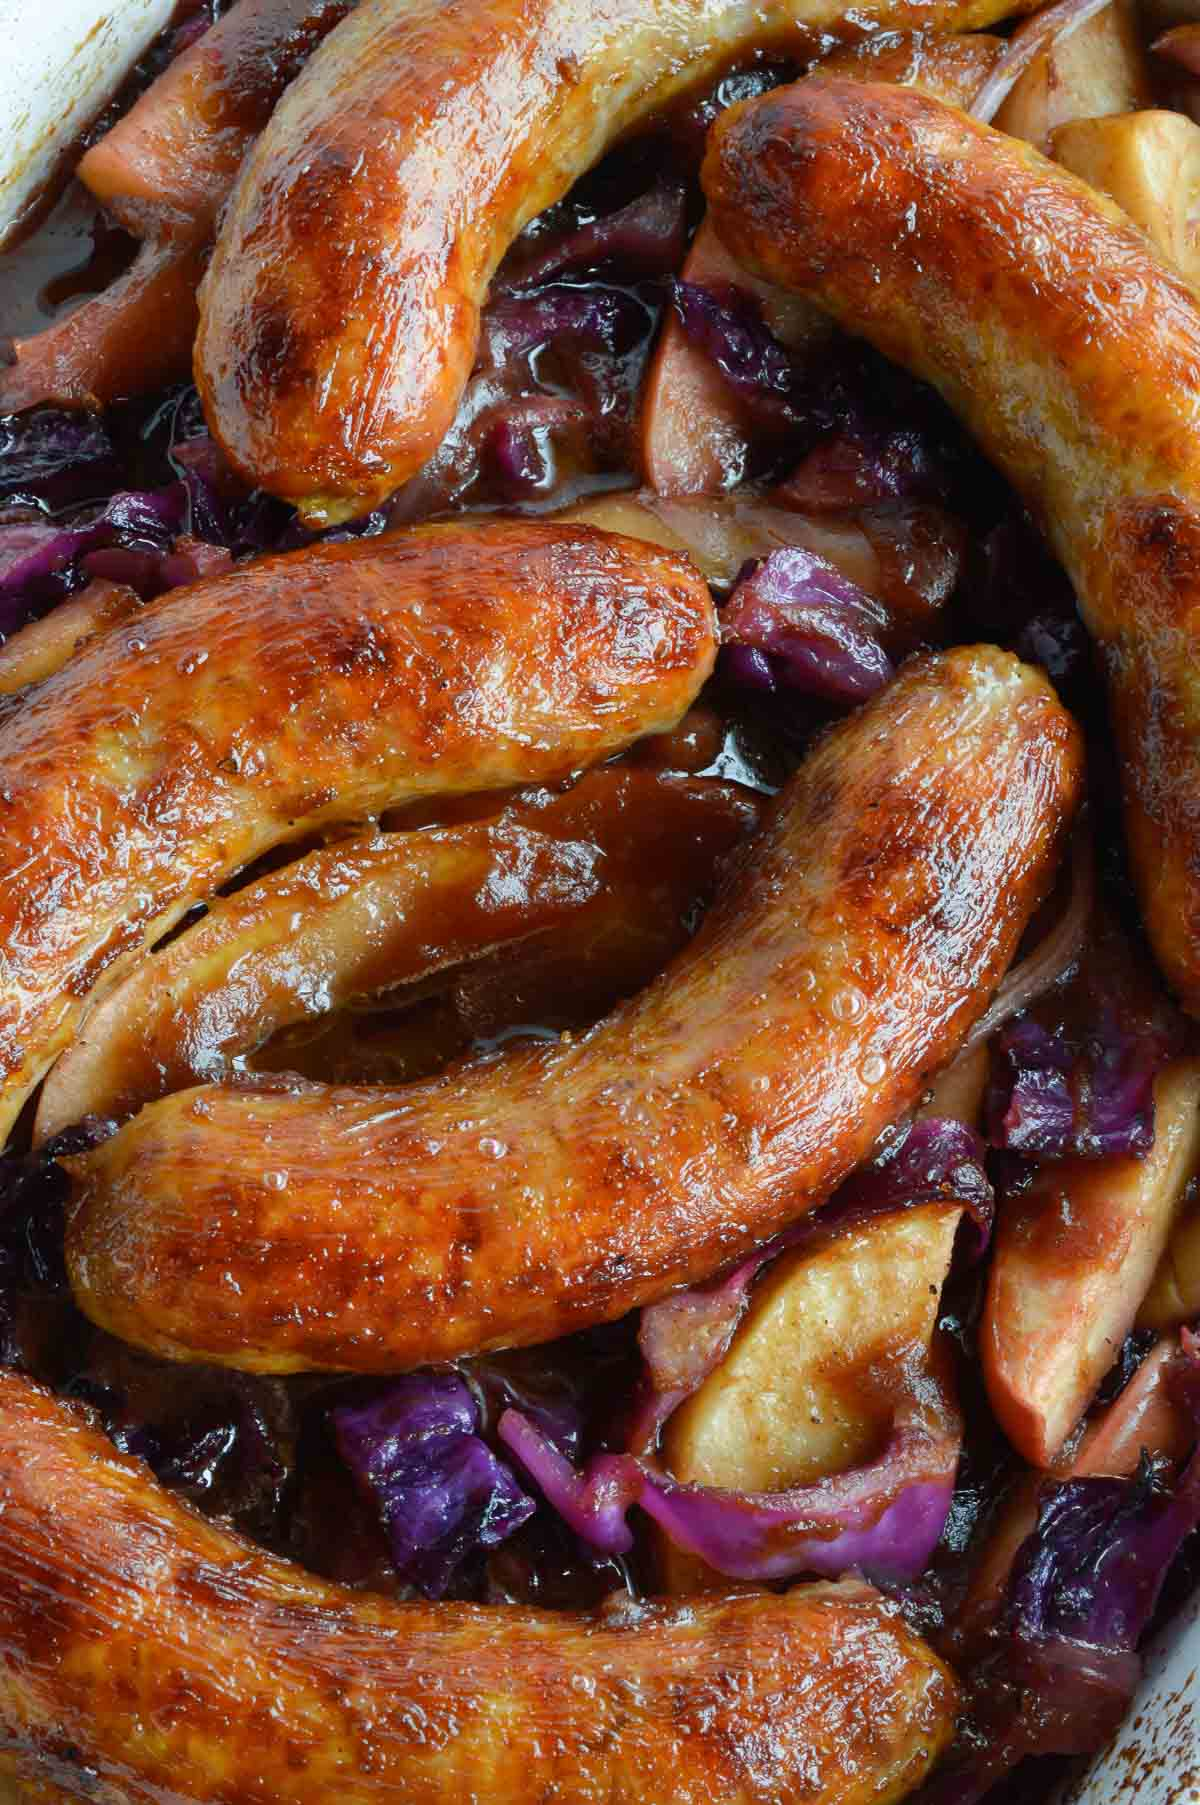 This Baked Sausage with Apples and Cabbage is a nutritious, hearty and delicious dinner recipe. A one pot meal that is beyond easy to make!